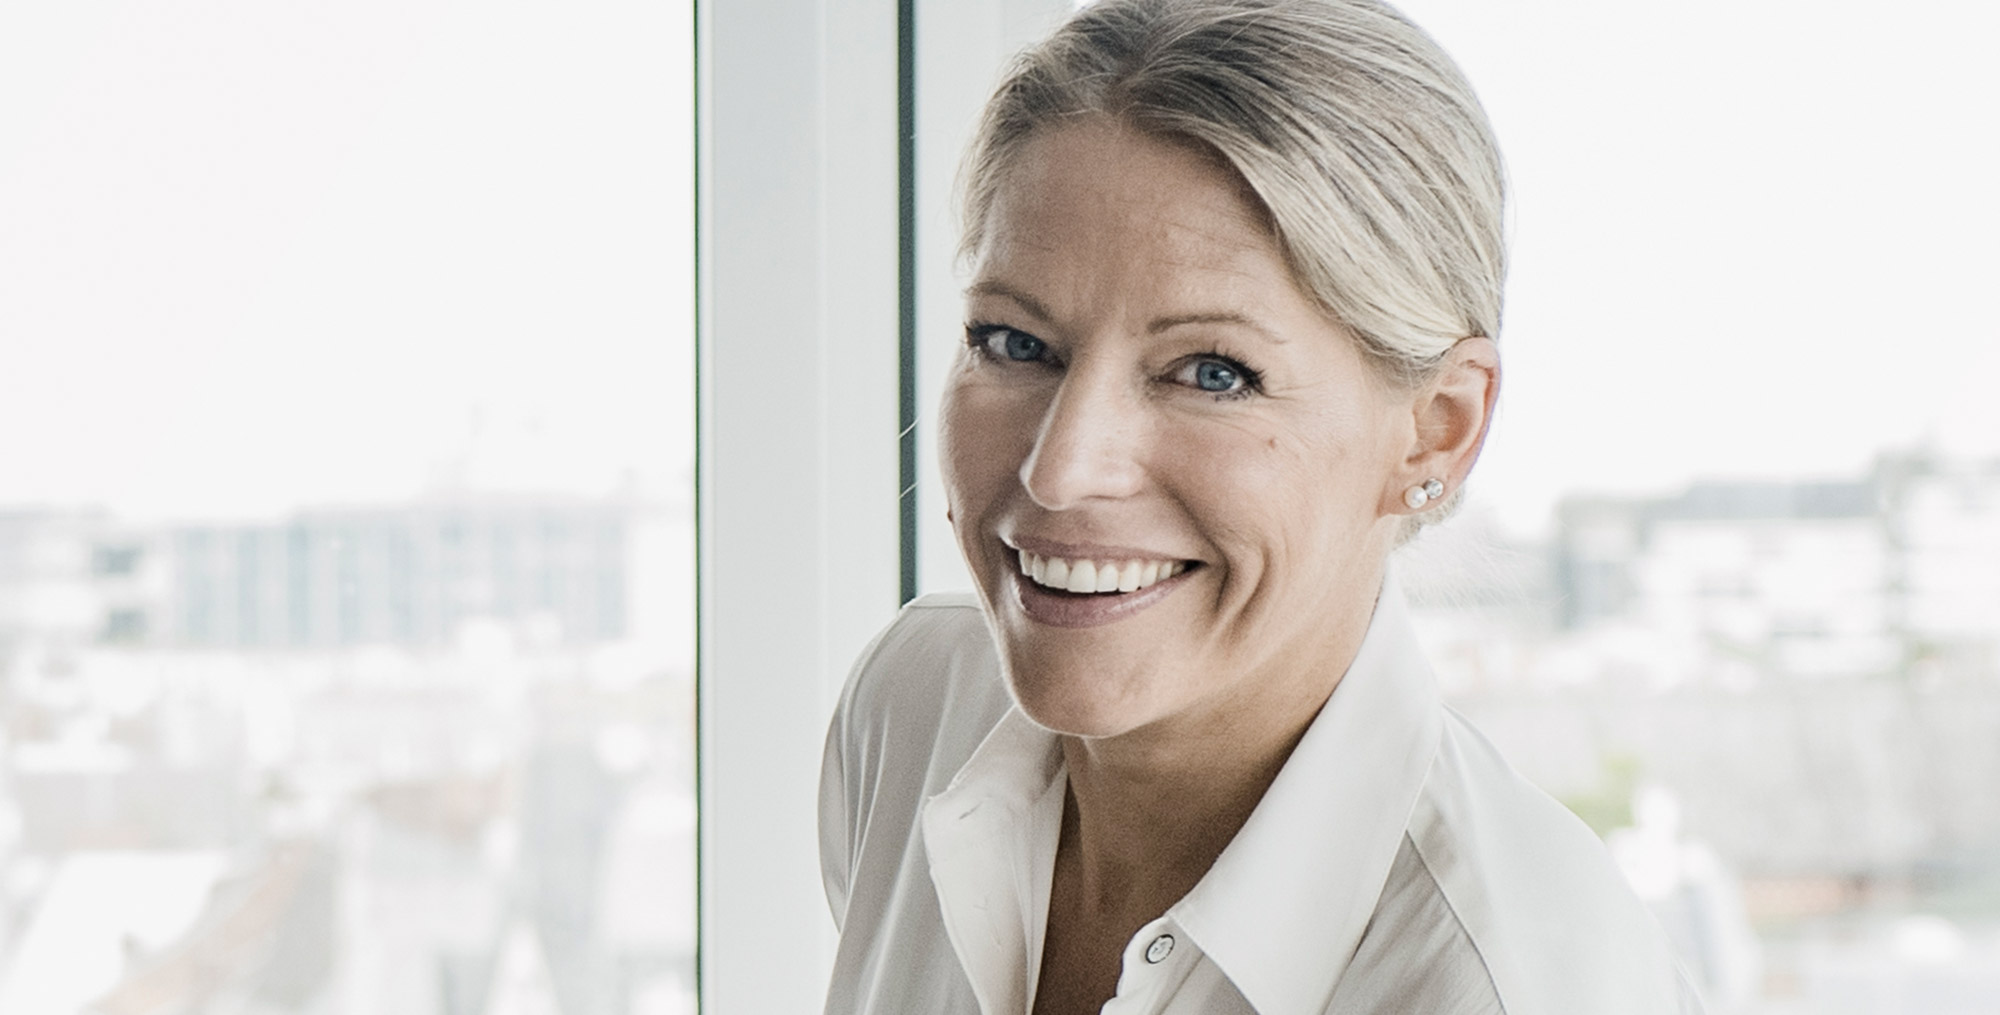 Kathrin Heerdt of Börgers lawyers, specialised law firm and notary for building law, real estate law, architects law, procurement law, commercial tenancy law, dispute consulting - Berlin, Hamburg, Stuttgart